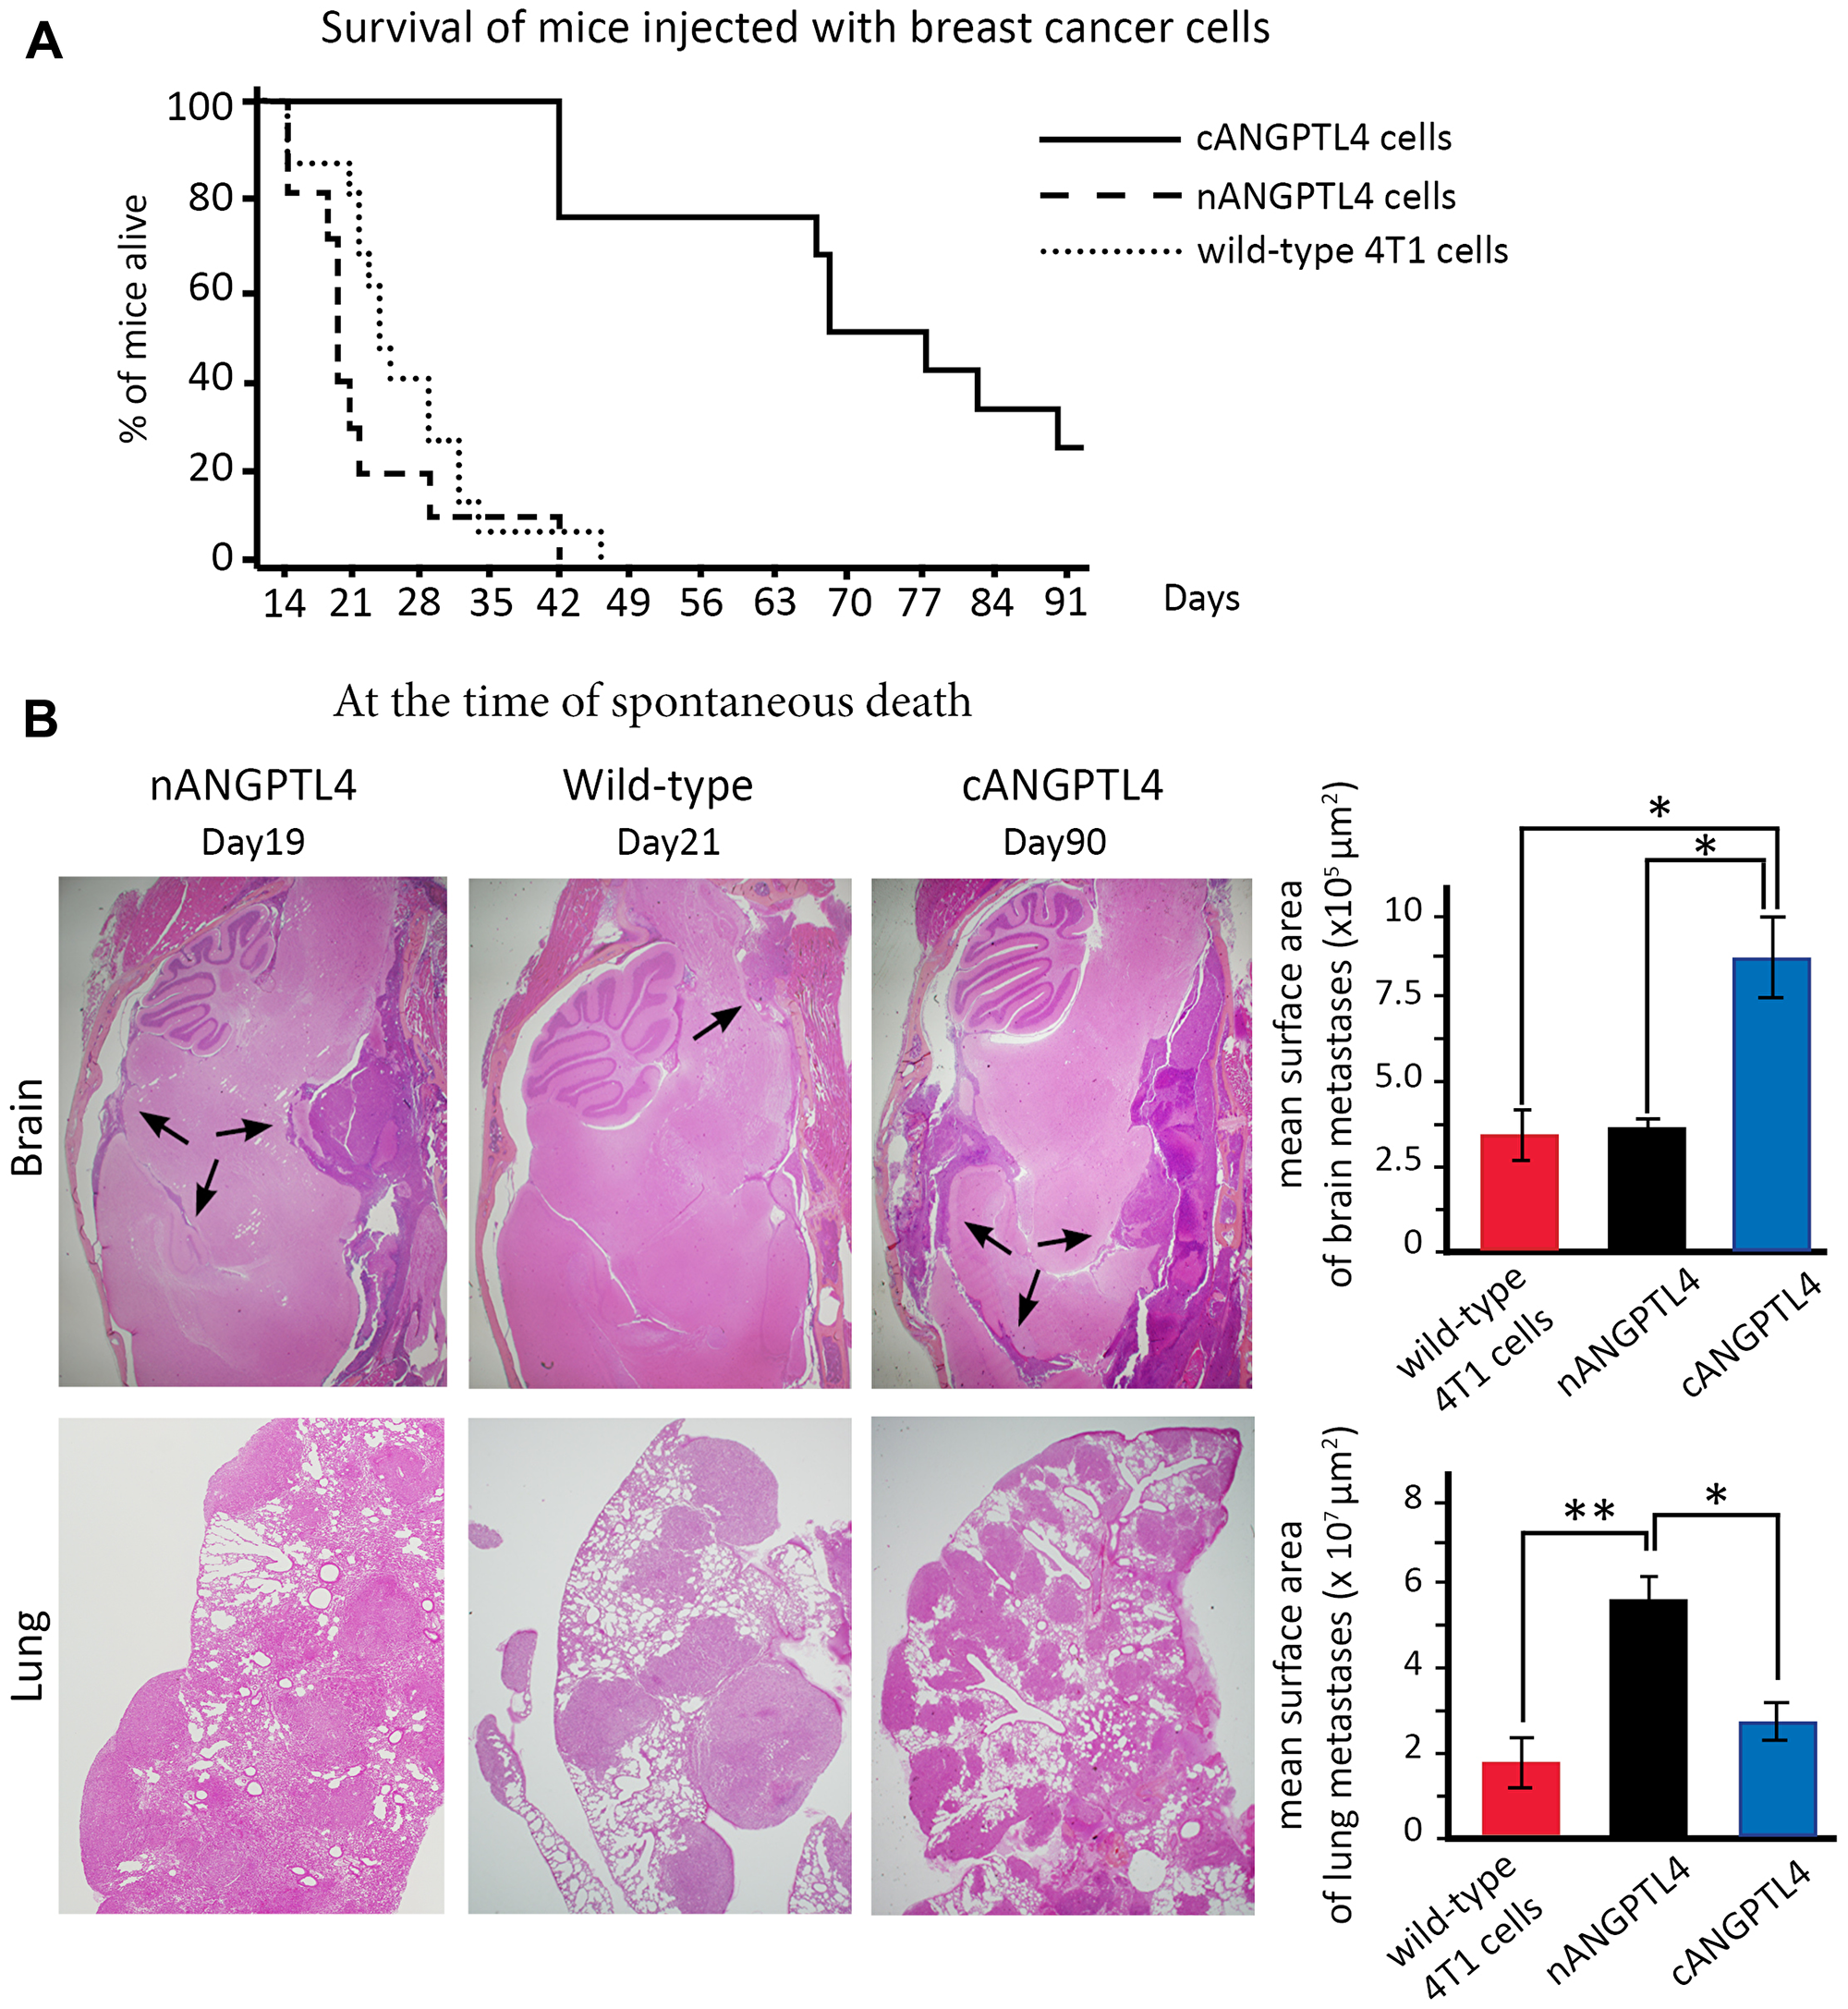 Phenotype of mice injected with 4T1 cells expressing either nANGPTL4 or cANGPTL4 fragment.